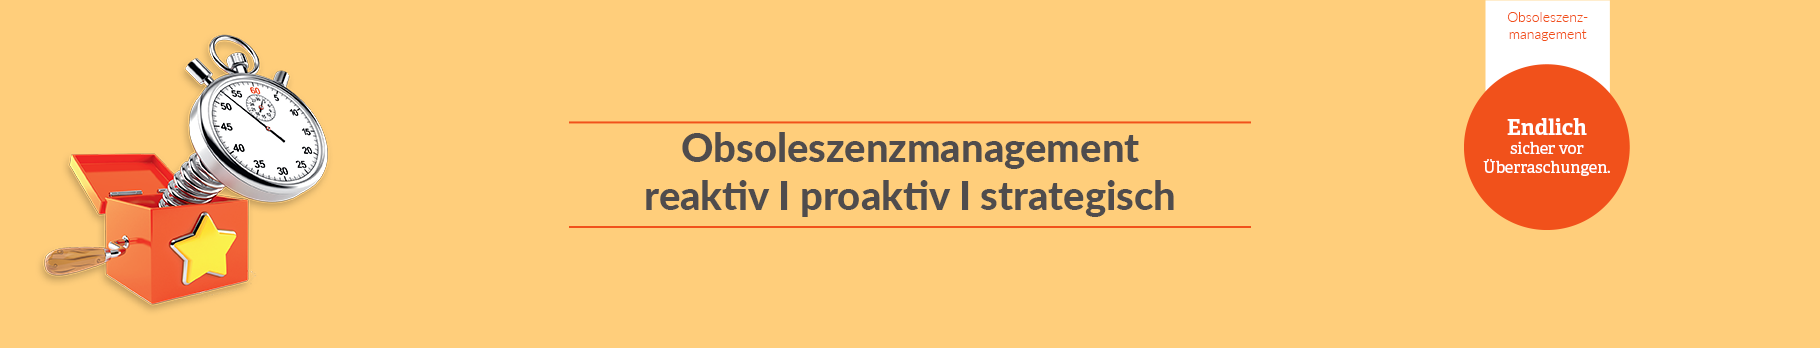 Obsoleszenzmanagement